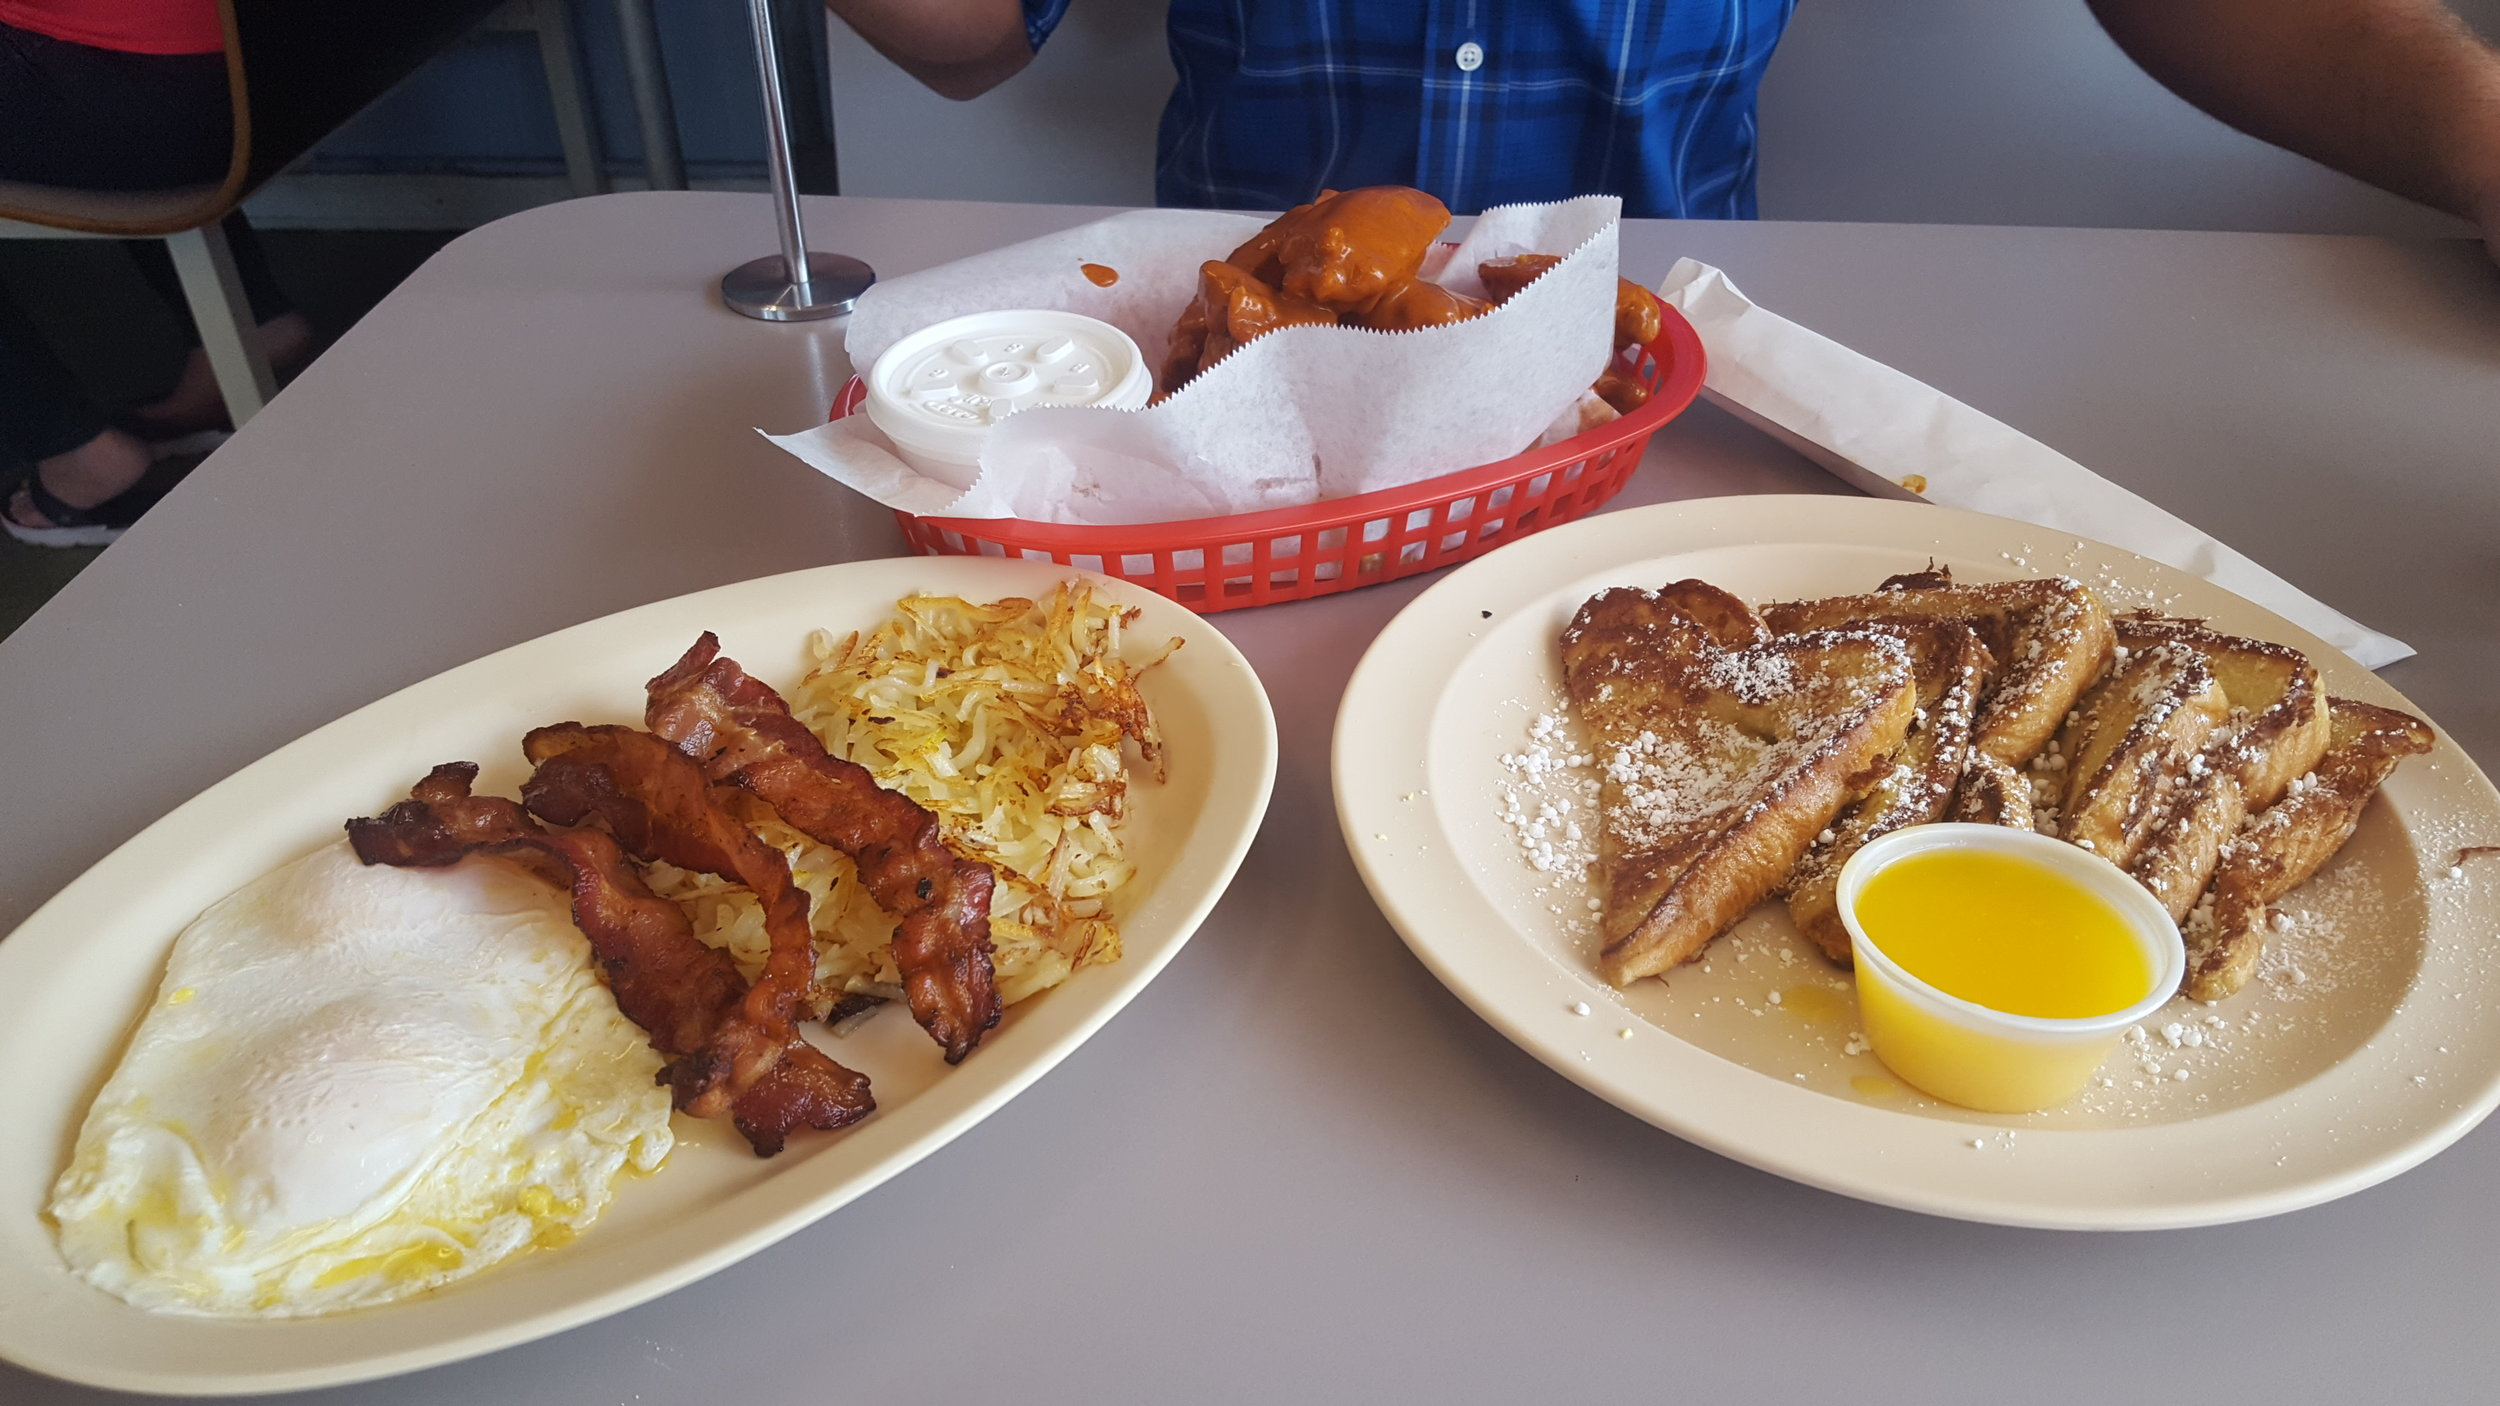 My Brunch spread (I did share the wings, I swear!), Jon's came moments later.